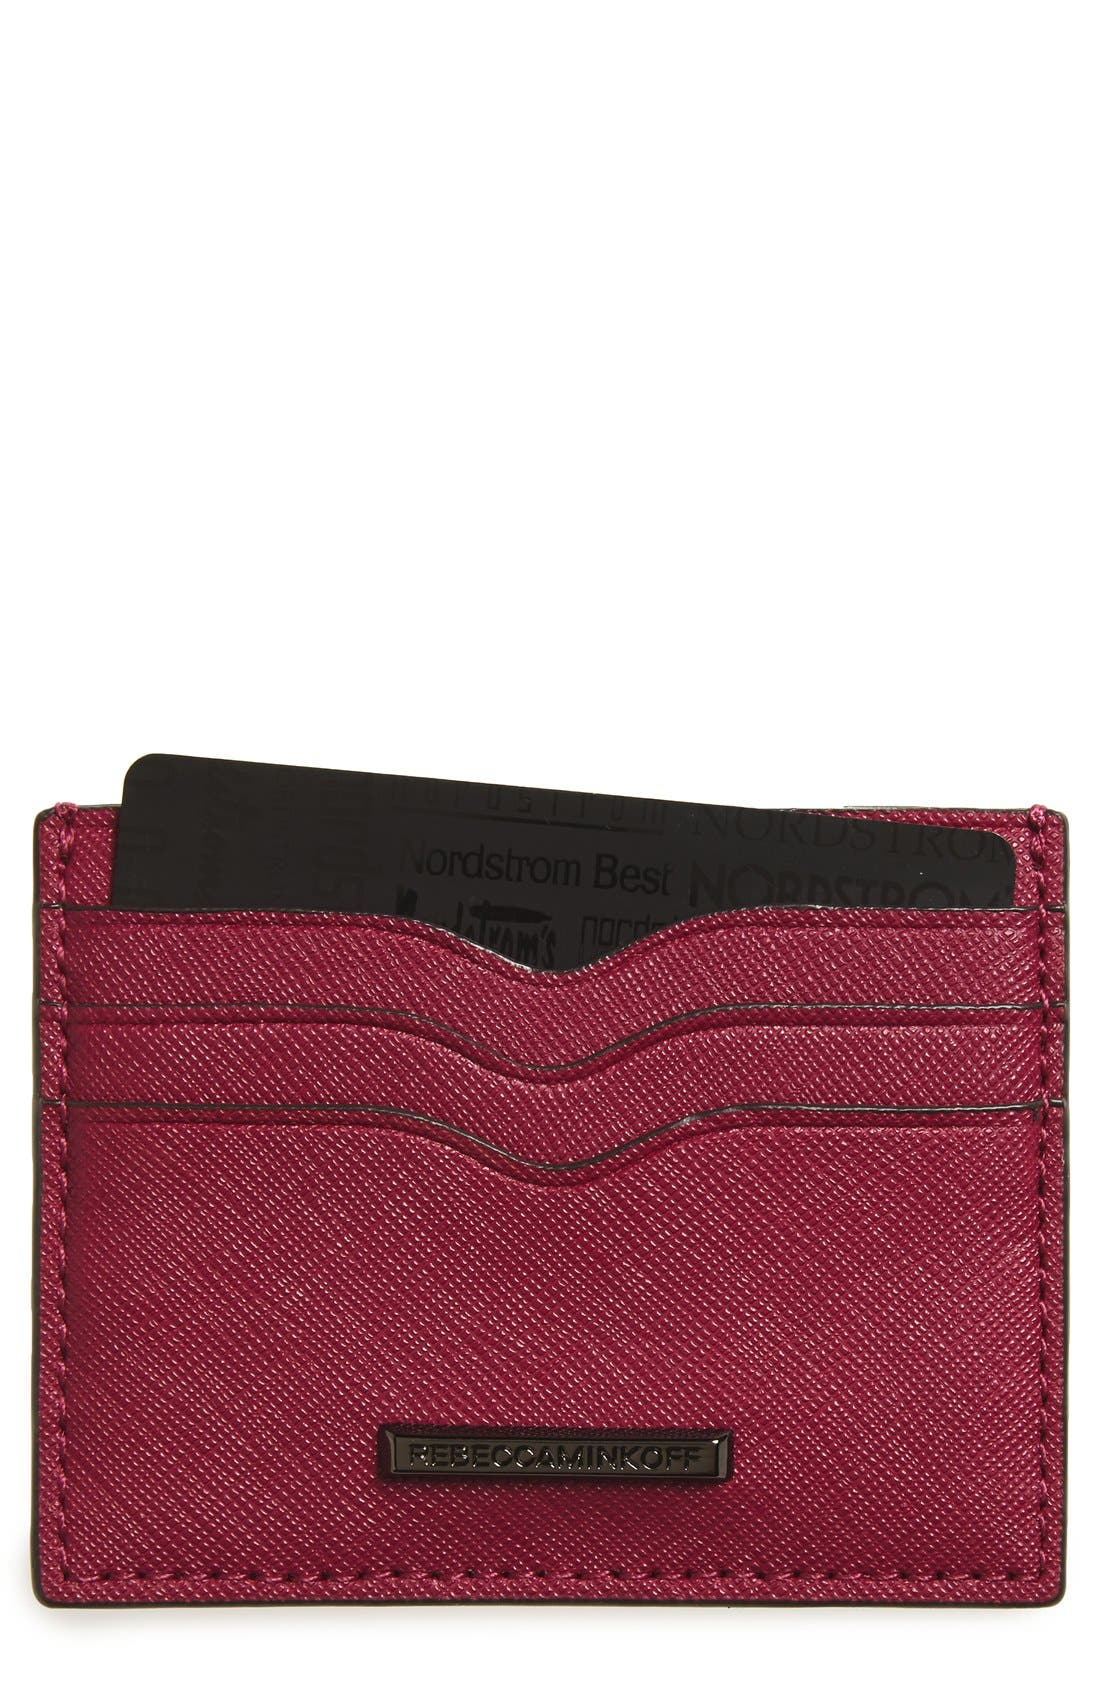 Main Image - Rebecca Minkoff Everyday Leather Card Case